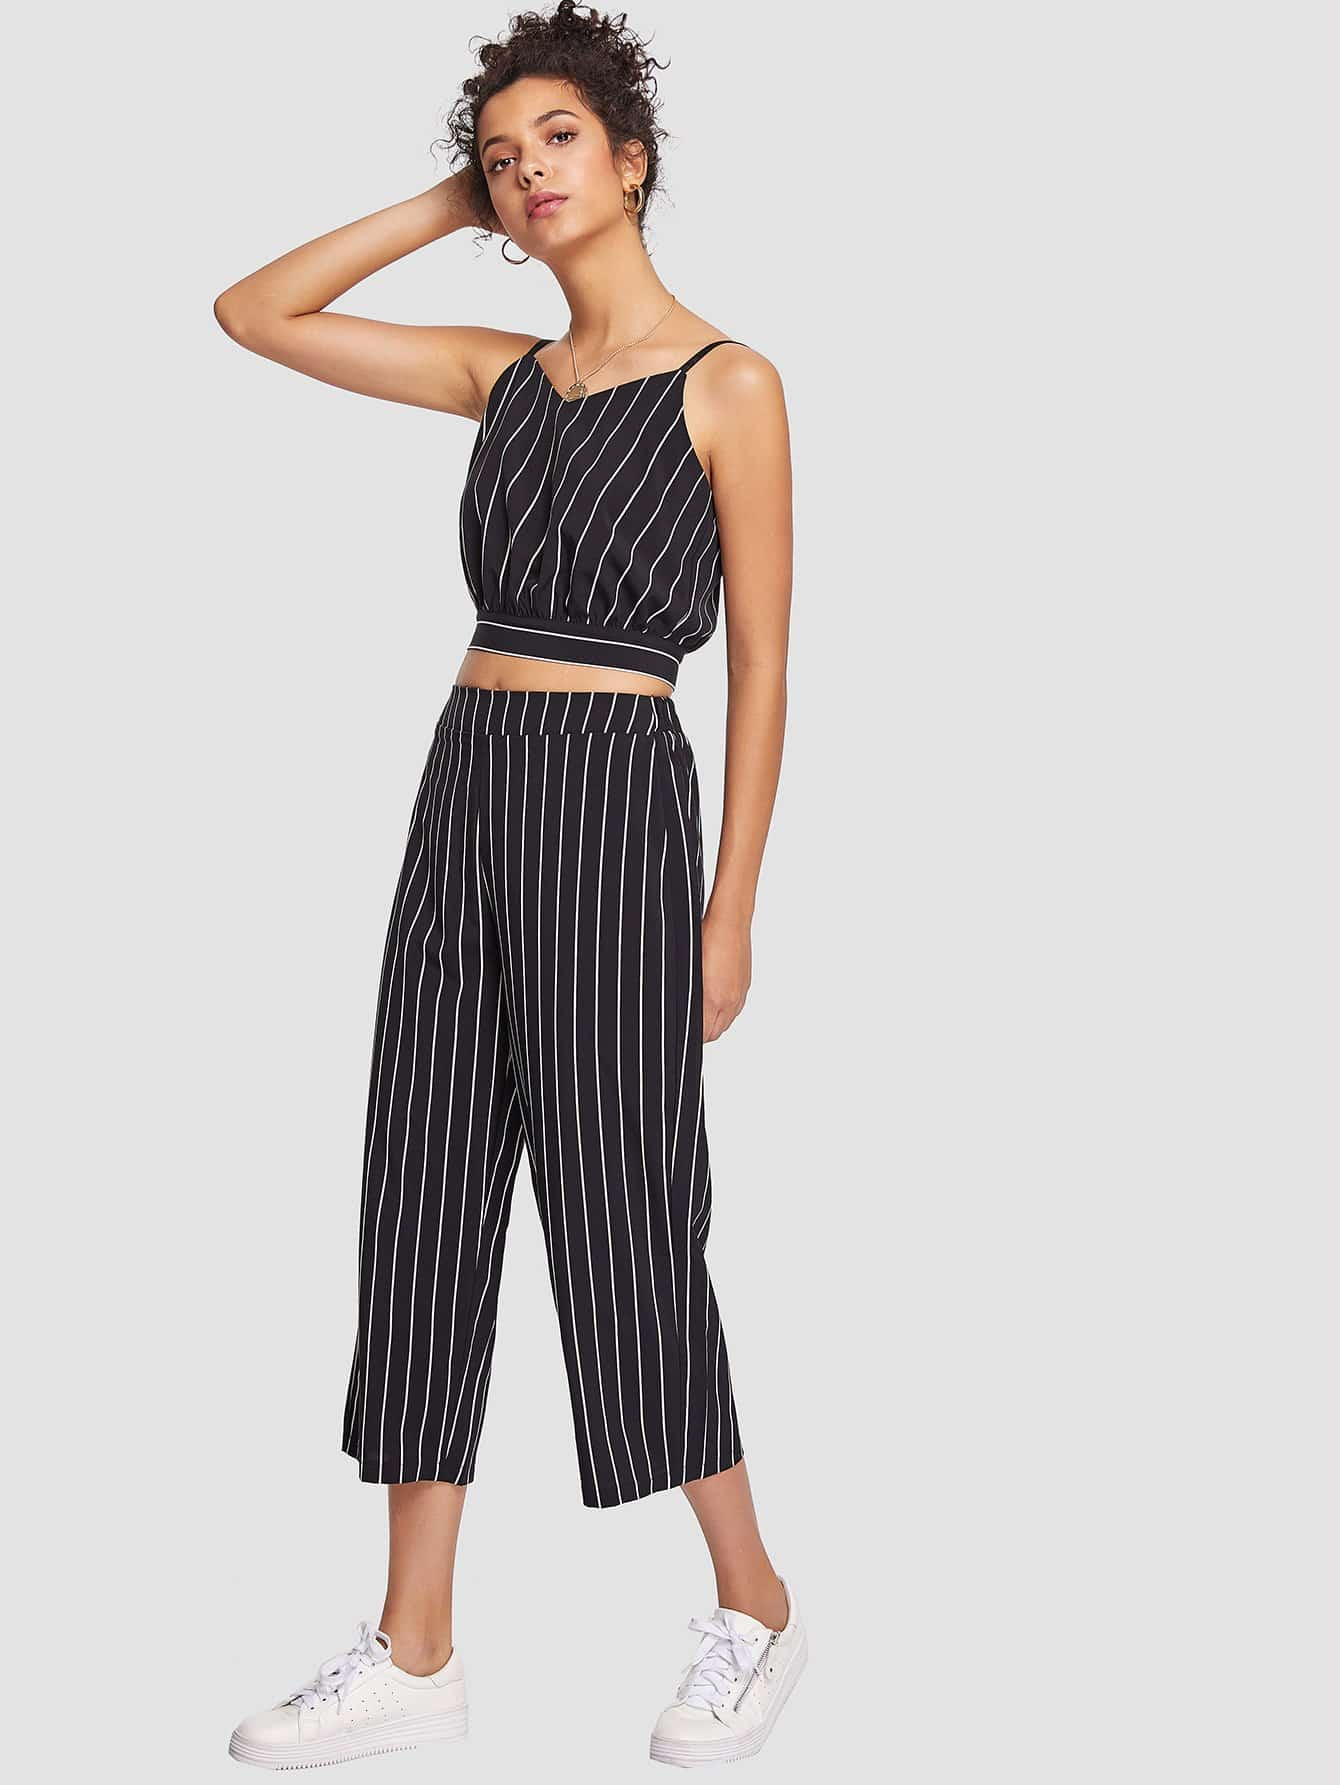 Striped Knot Back Crop Top With Pants zip up back knot plaid top